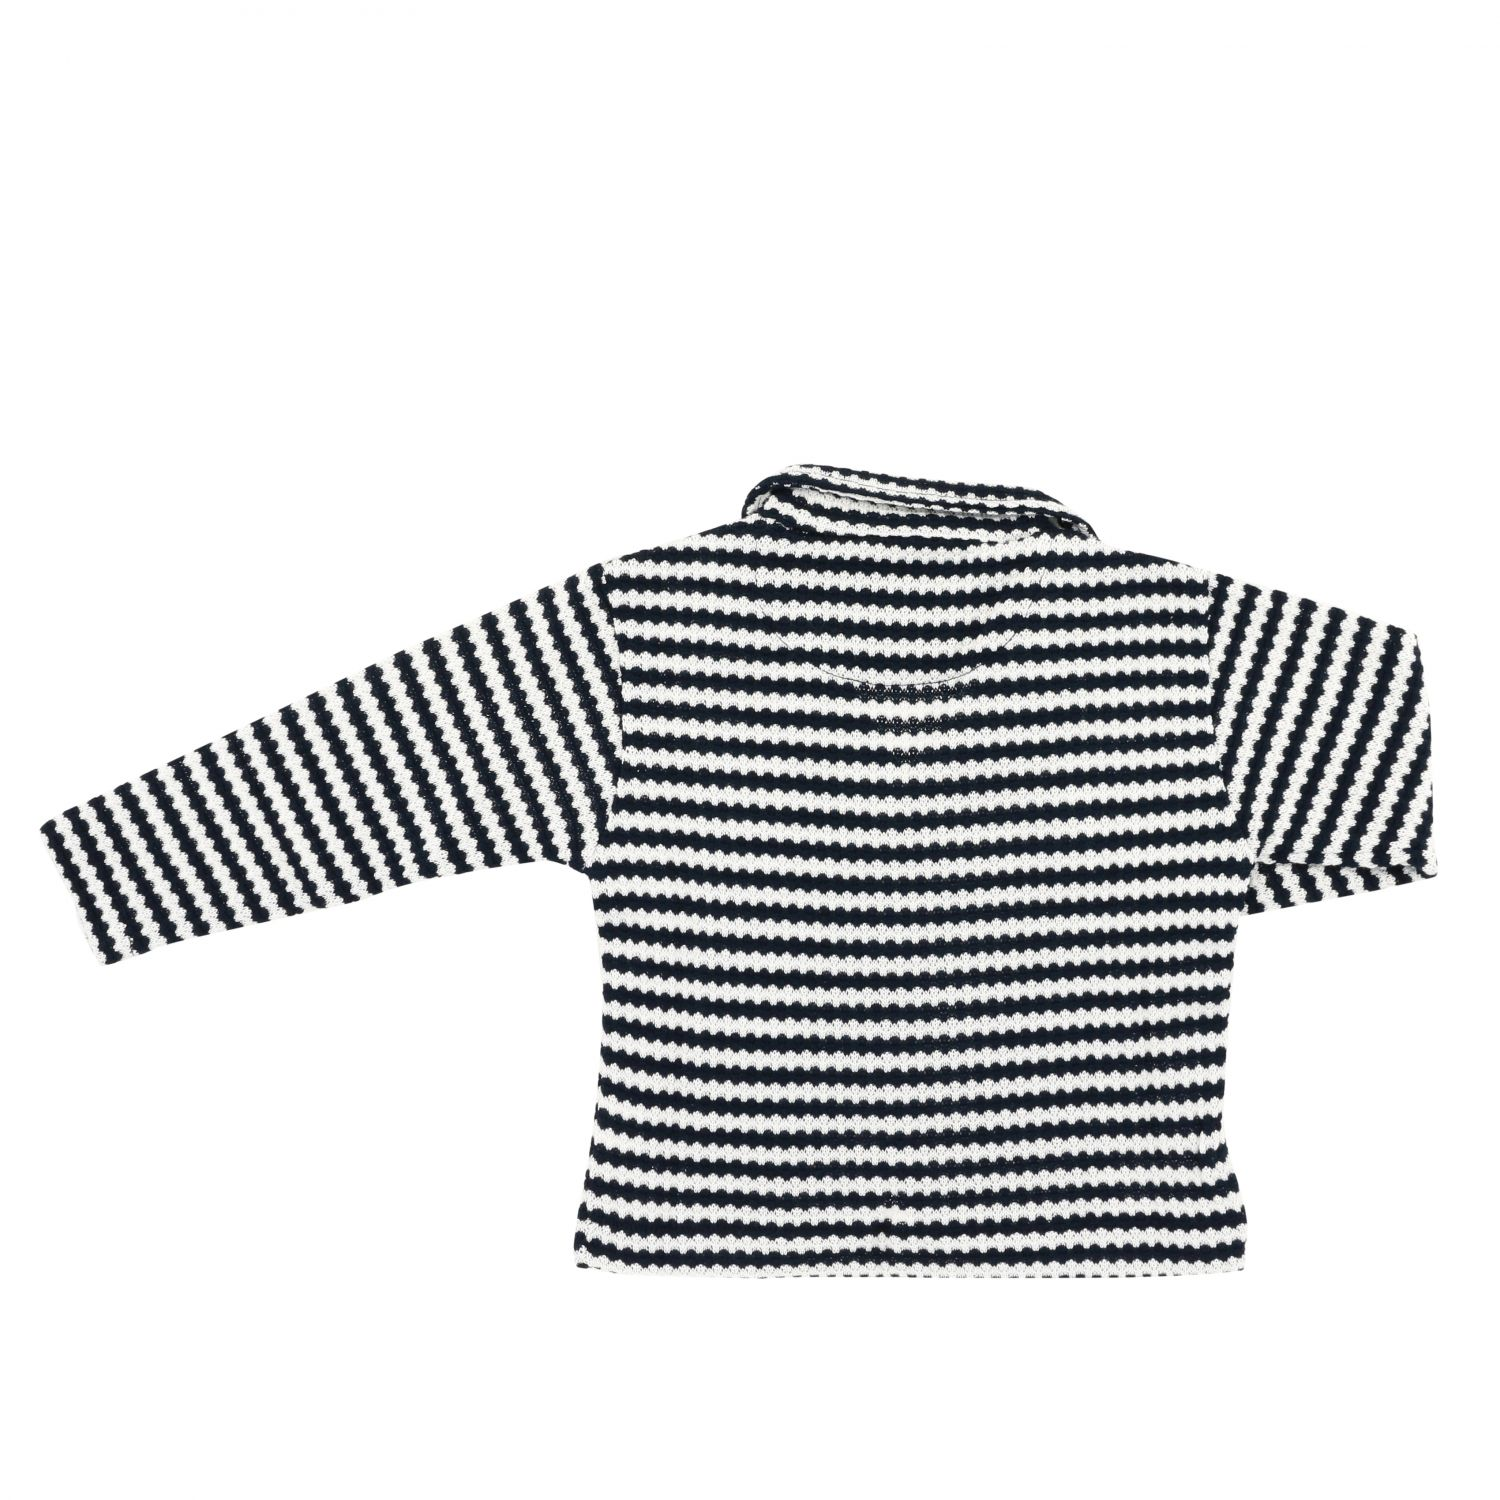 Nupkeet striped knitted jacket blue 2